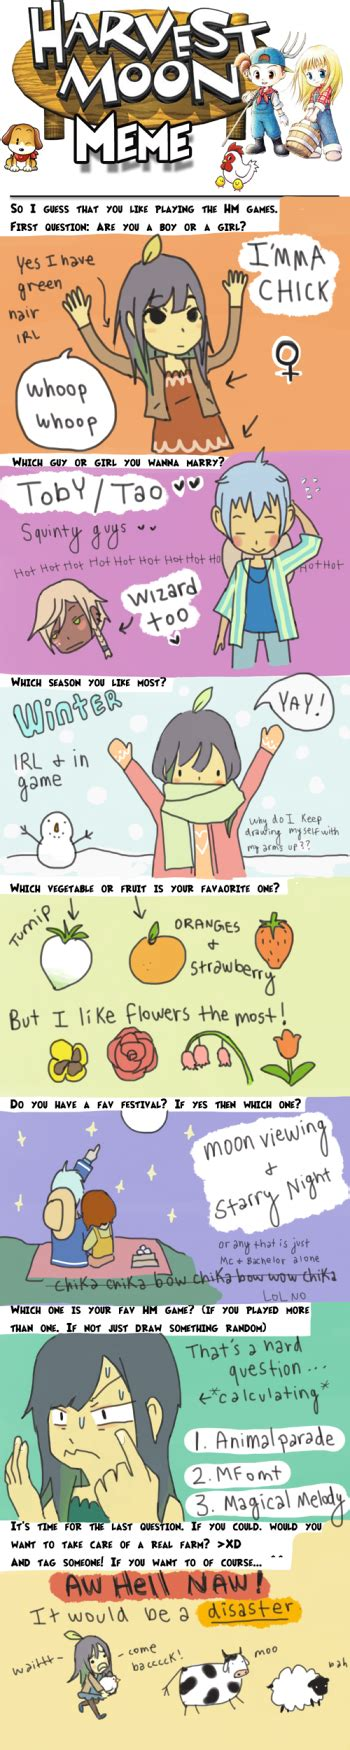 Harvest Moon Meme - harvestmoonmeme explore harvestmoonmeme on deviantart